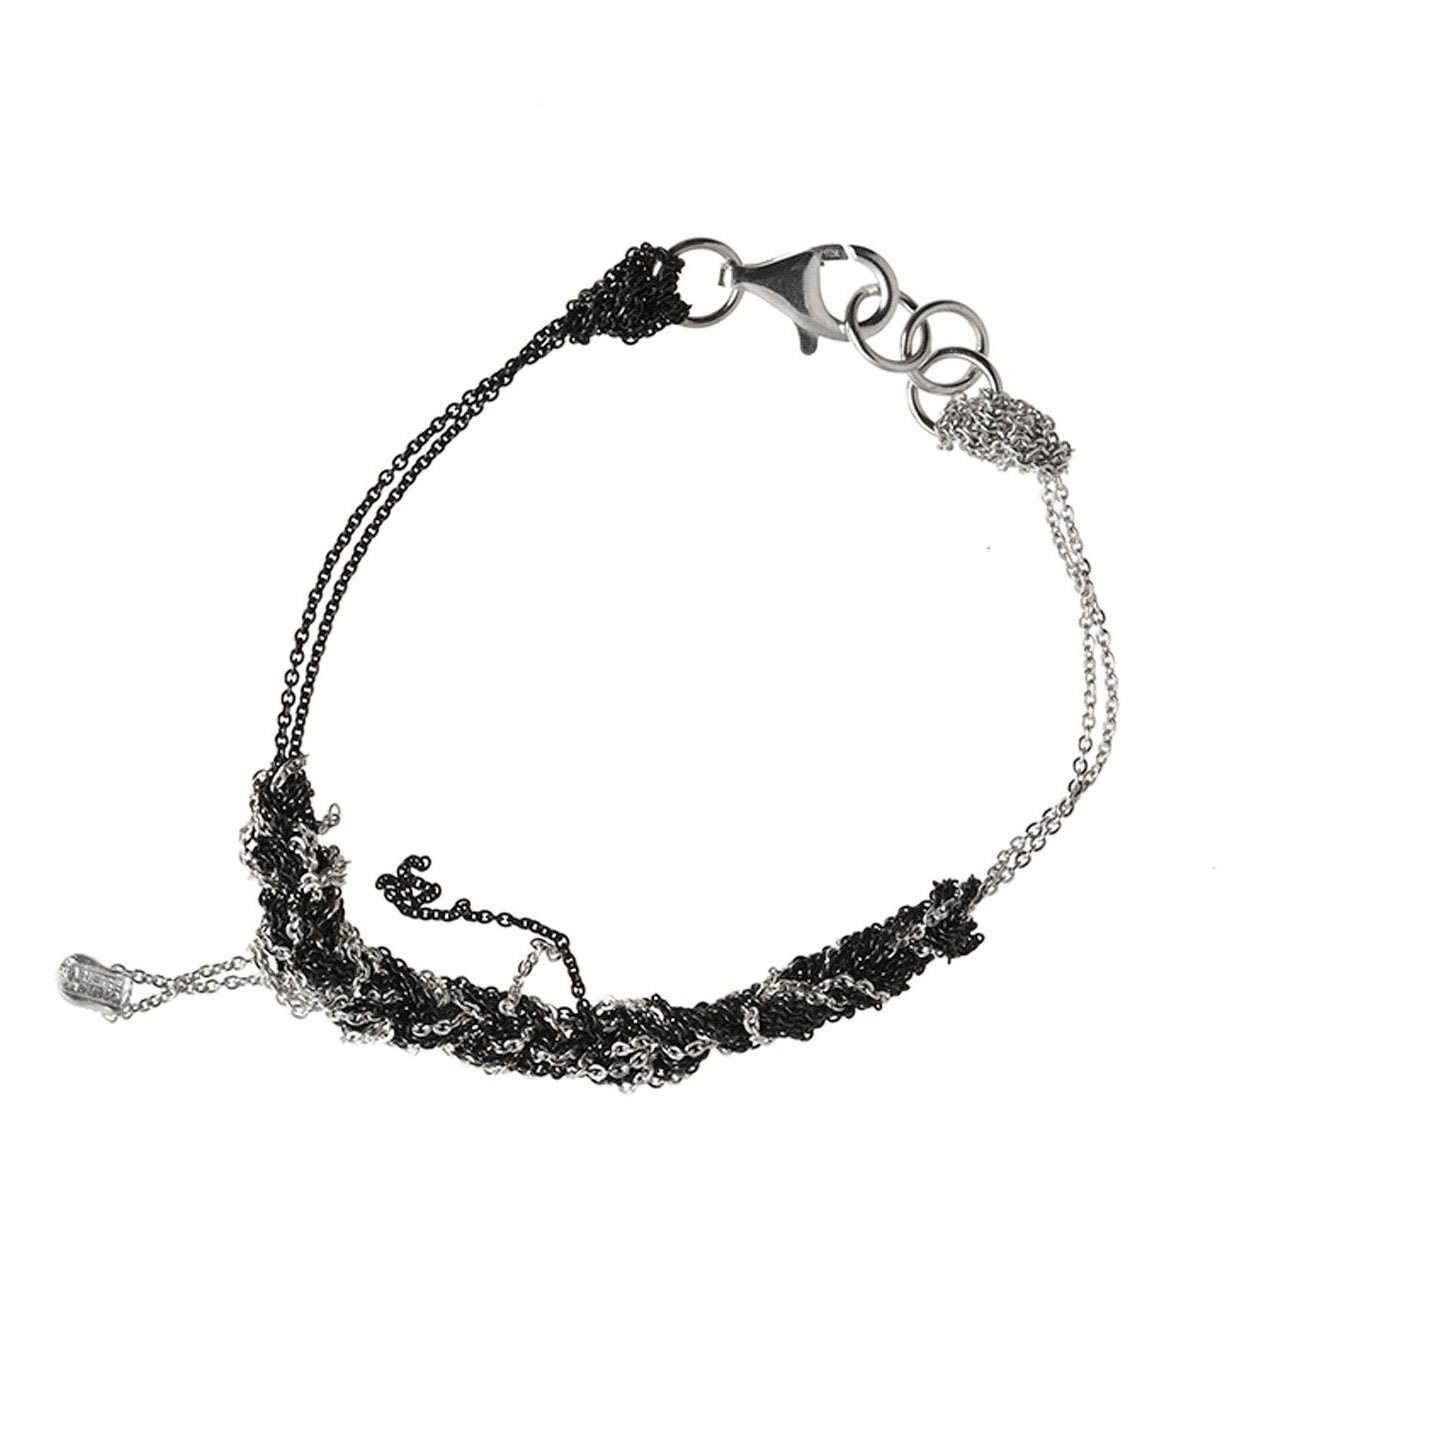 2-Tone Bare Chain Bracelet in Ash + Charcoal